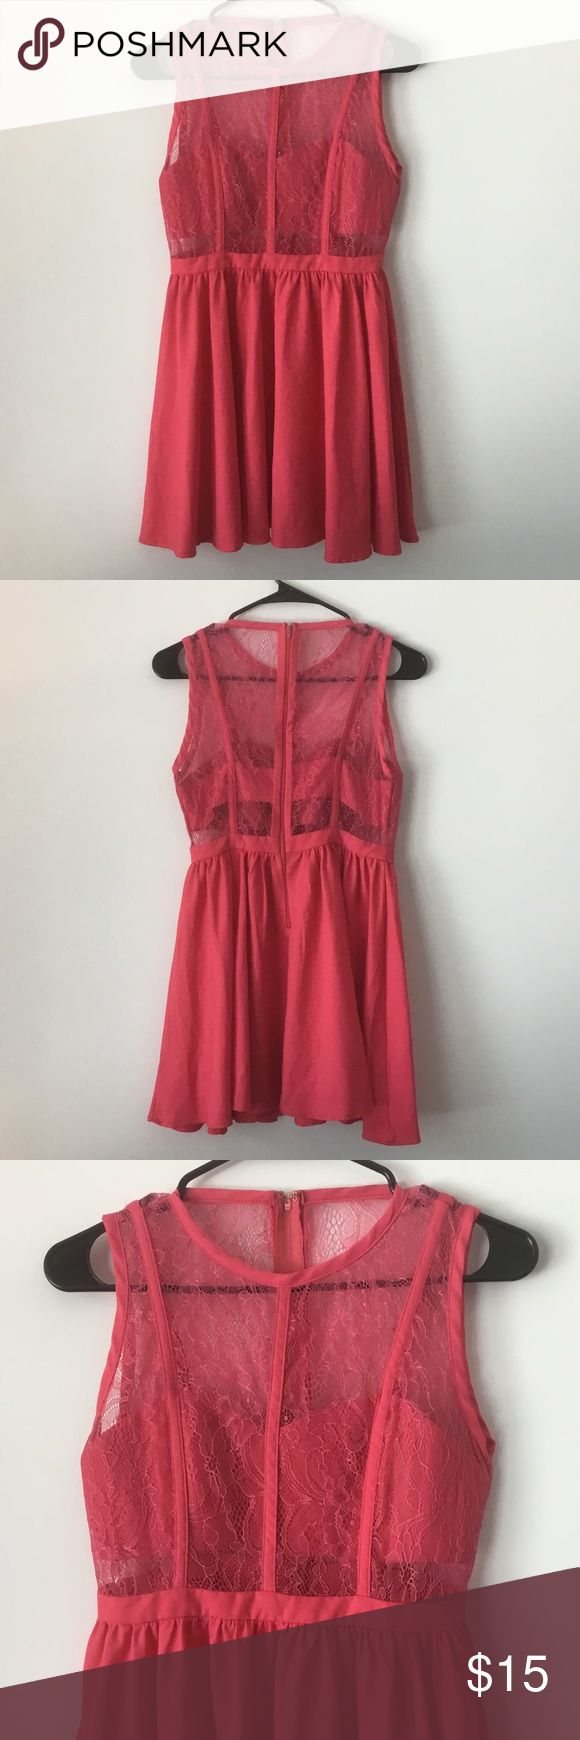 Akira Lace Bandeau Dress Excellent condition Lace dress with bandeau top. Beautiful jaw-dropping pink color. AKIRA Dresses Mini